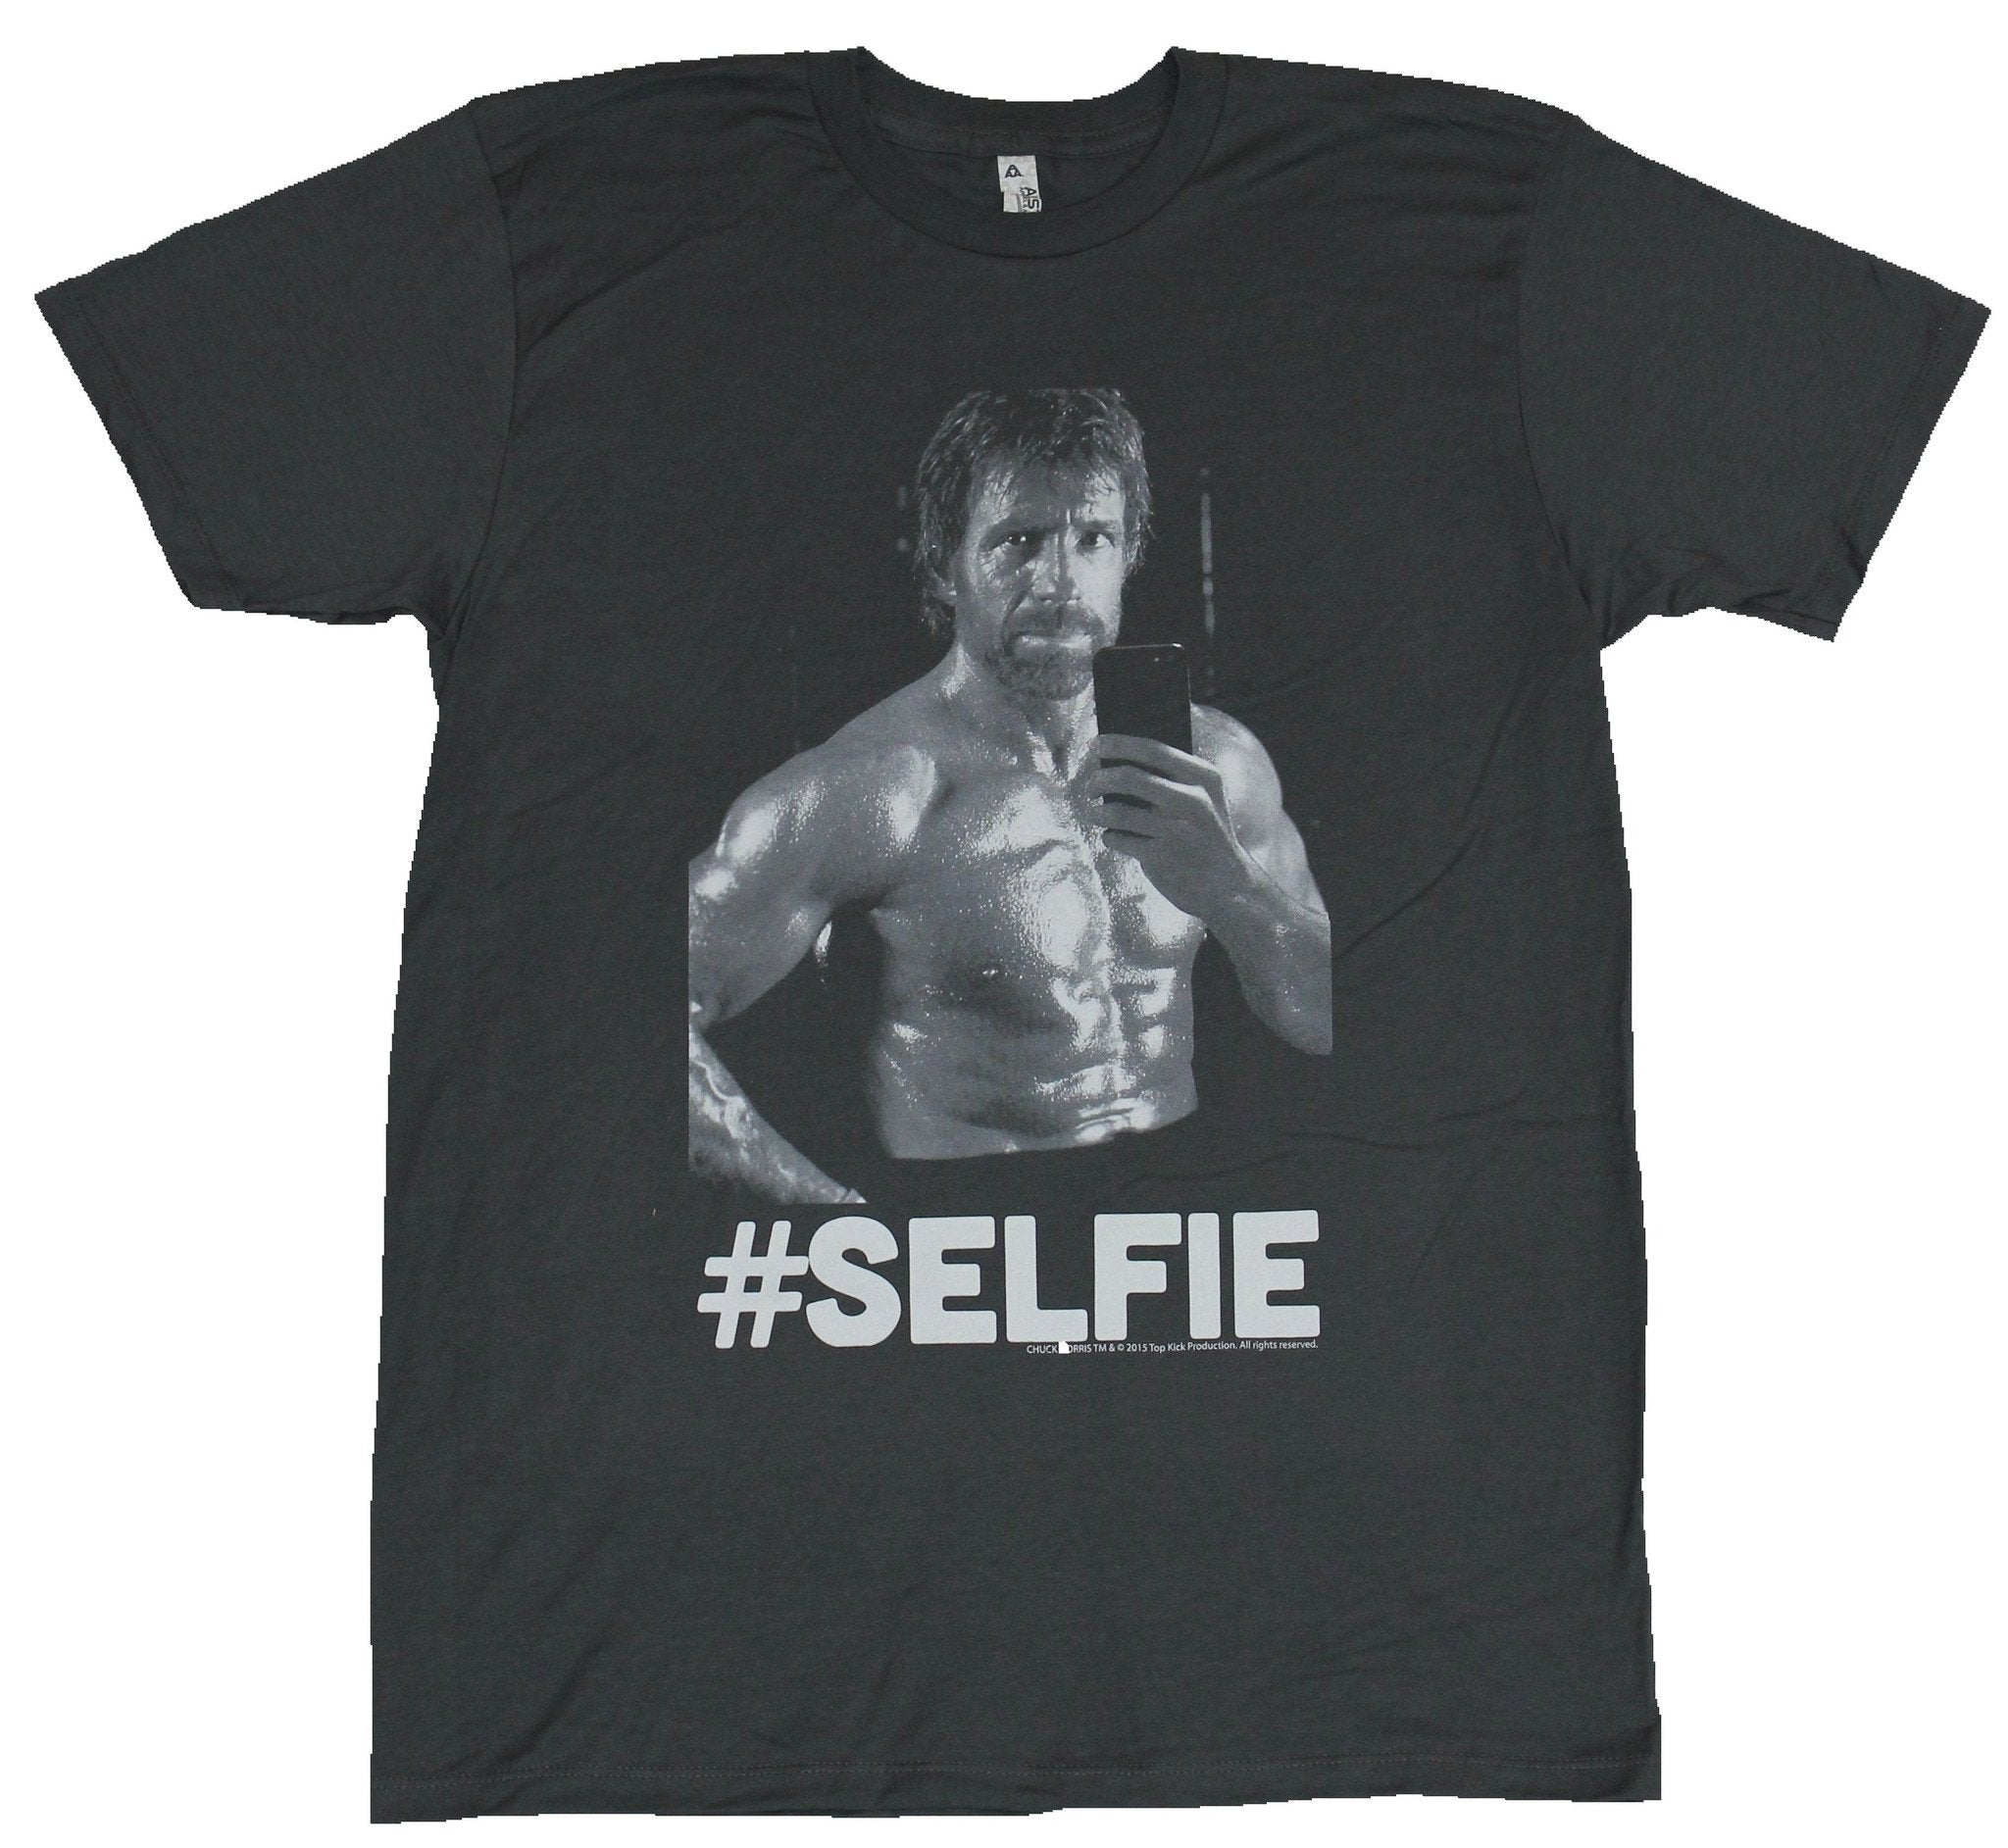 Chuck Norris Mens T-Shirt -  #Selfie Battle Ready Chuck Image